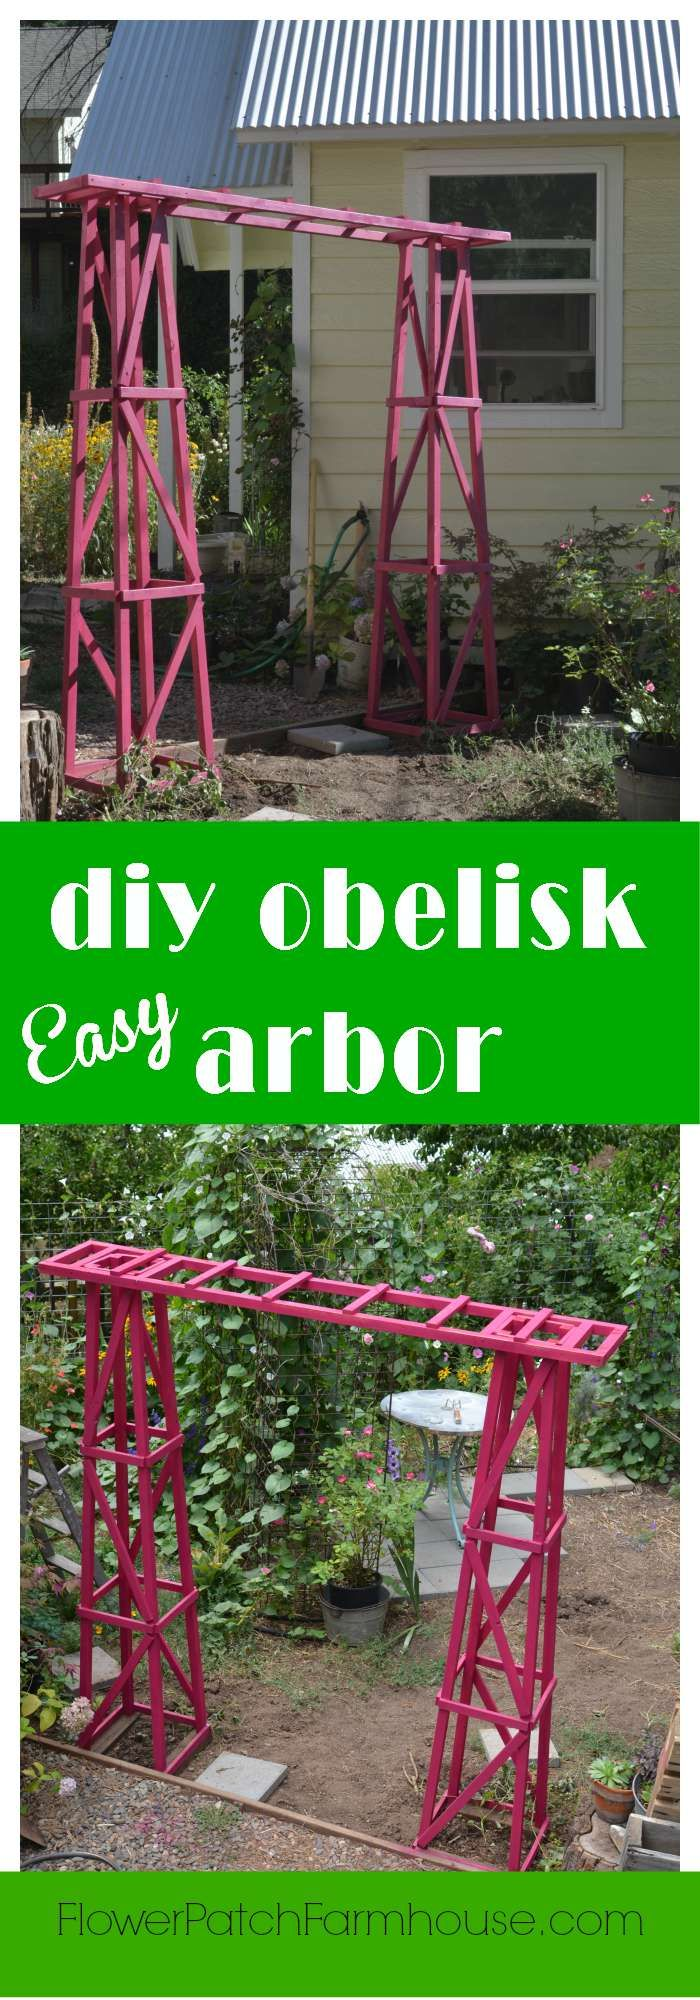 Build yourself this beautiful garden arbor.  Easy and inexpensive, you can have one done in a day.  Paint it any color you like! FlowerPatchFarmhouse.com